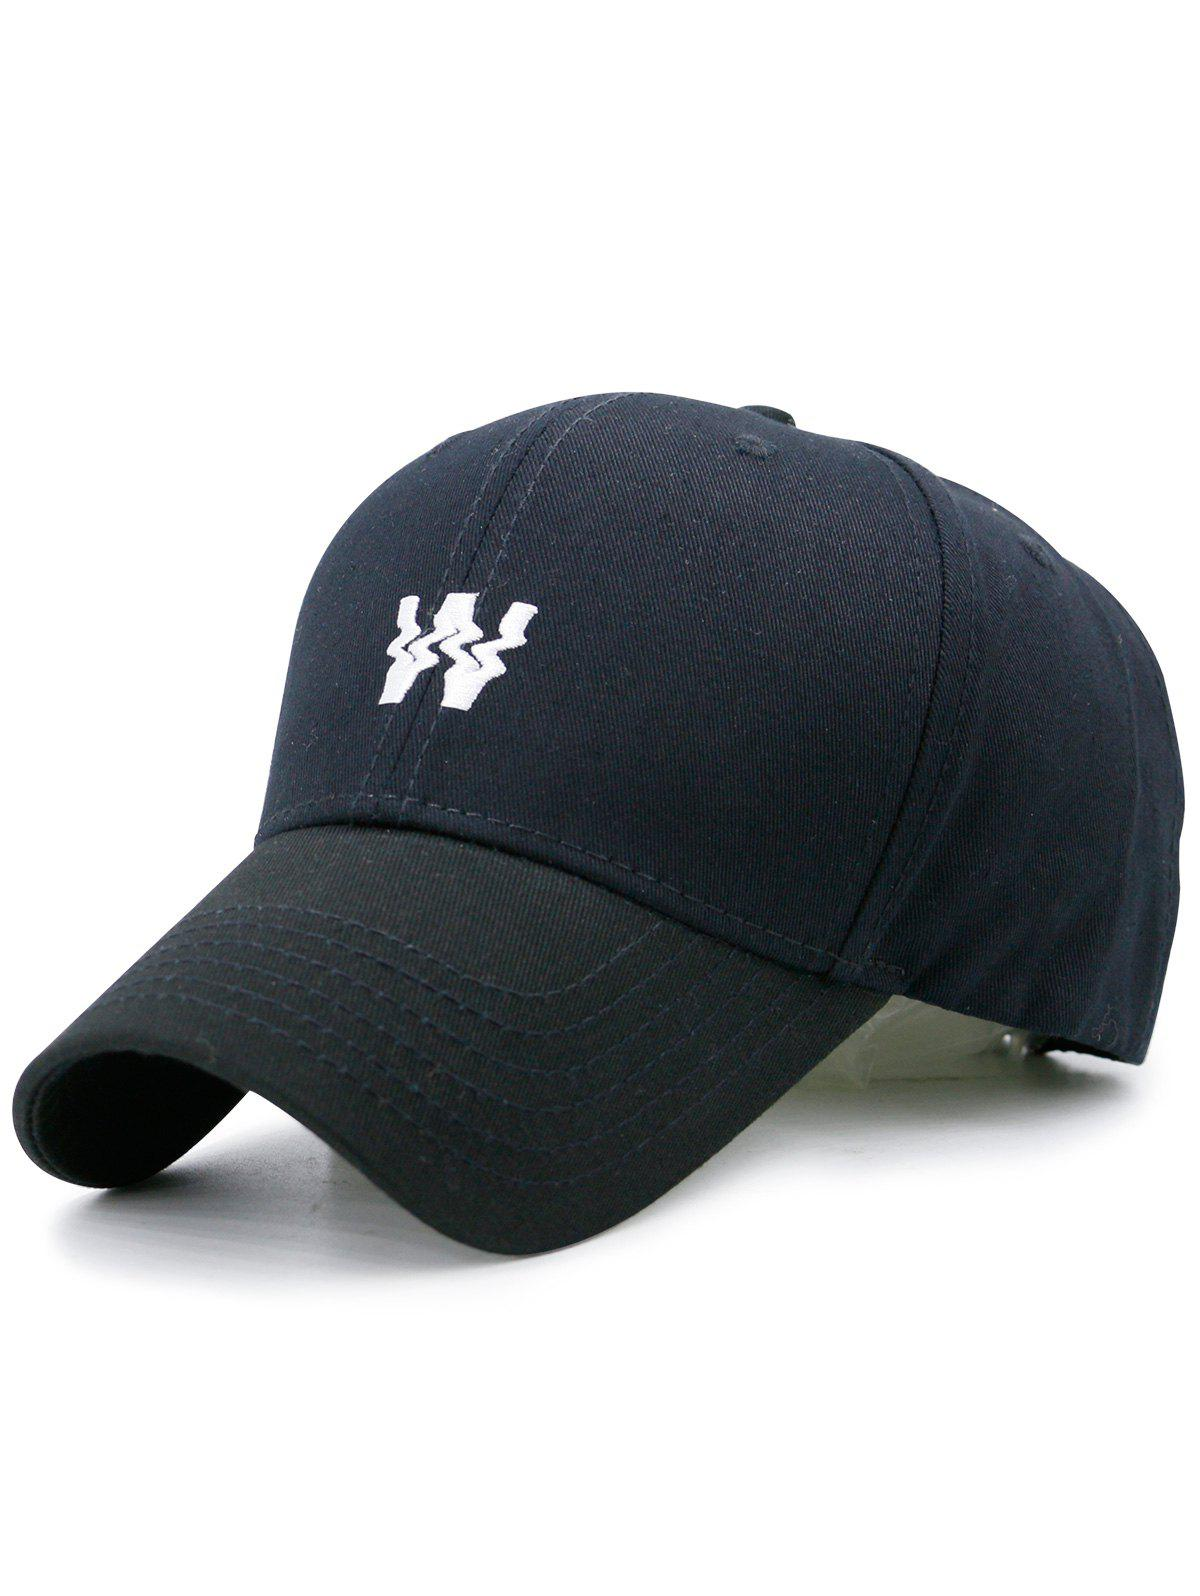 Distorted W Embroidered Baseball Hat, Black